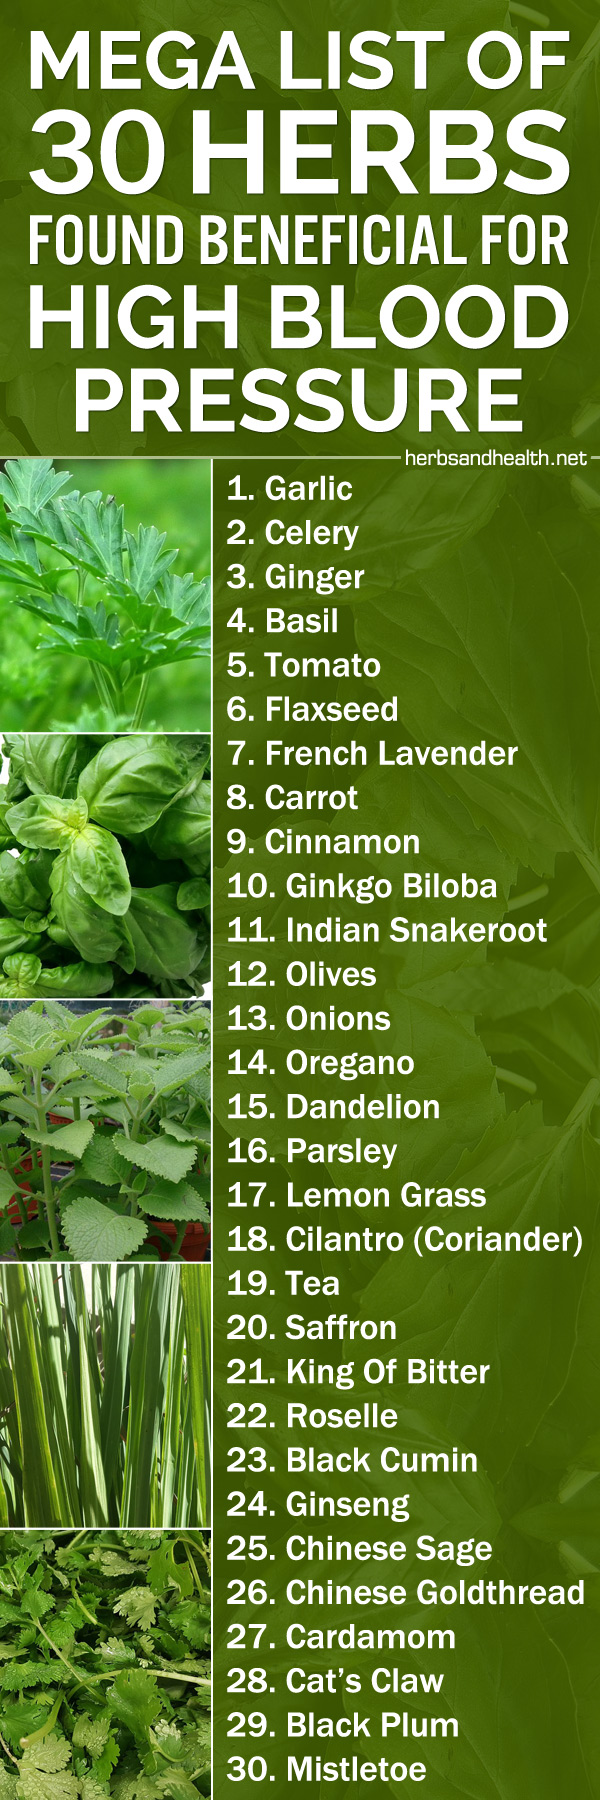 Mega List Of 30 Herbs Found Beneficial For High Blood Pressure